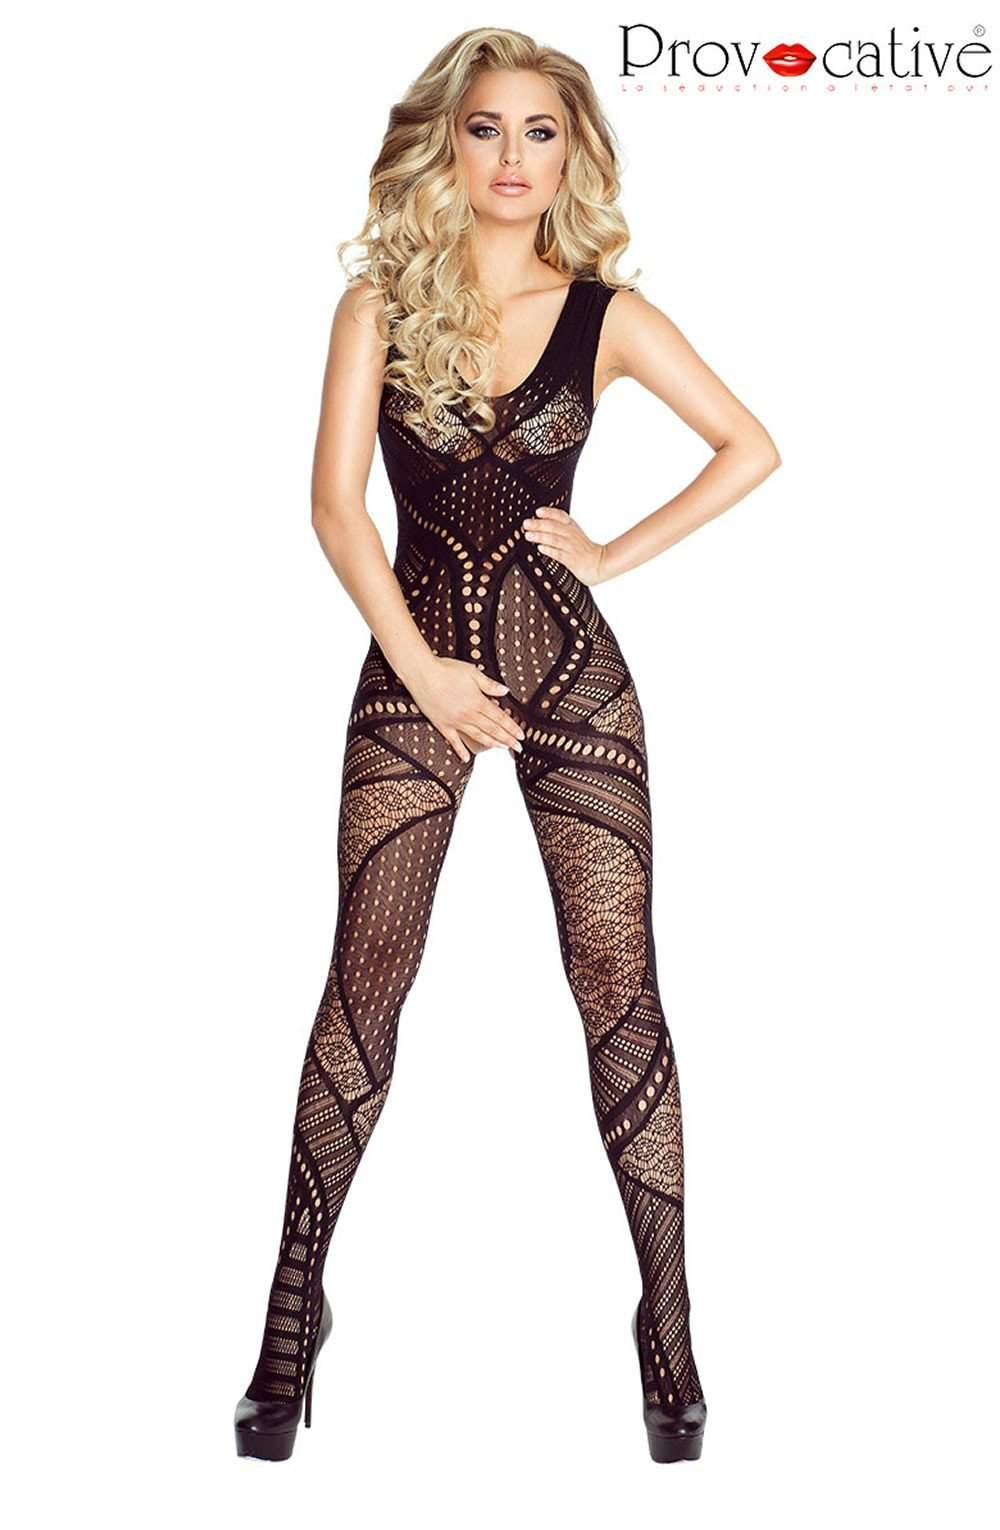 Provocative Bodystocking - Provocative - Katys Boutique Lingerie USA